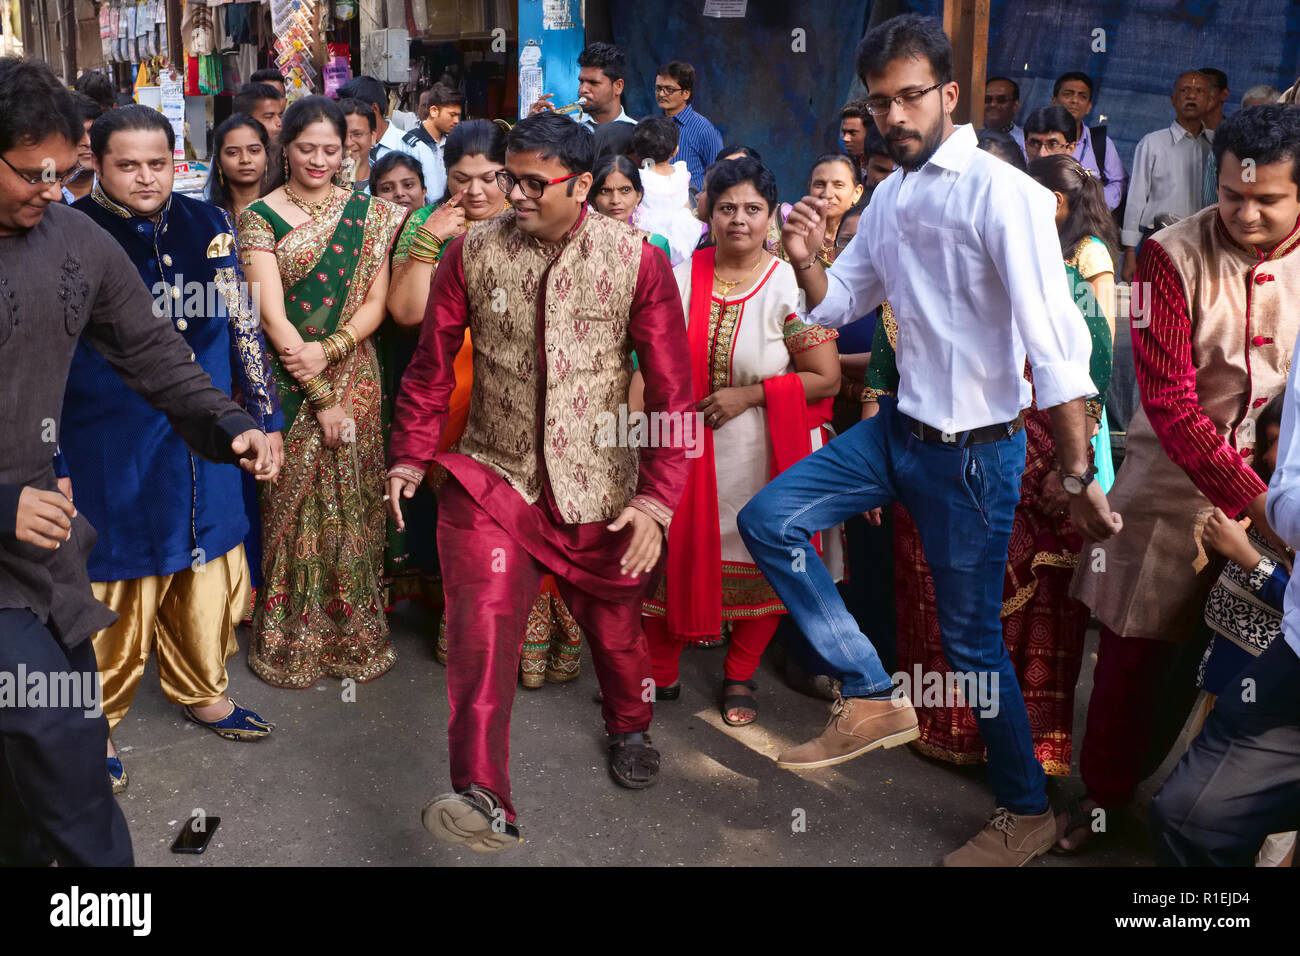 A Gujarati wedding party in Matunga, a suburb of Mumbai, India, spills out into the street, the participants dancing in the street and cheering Stock Photo